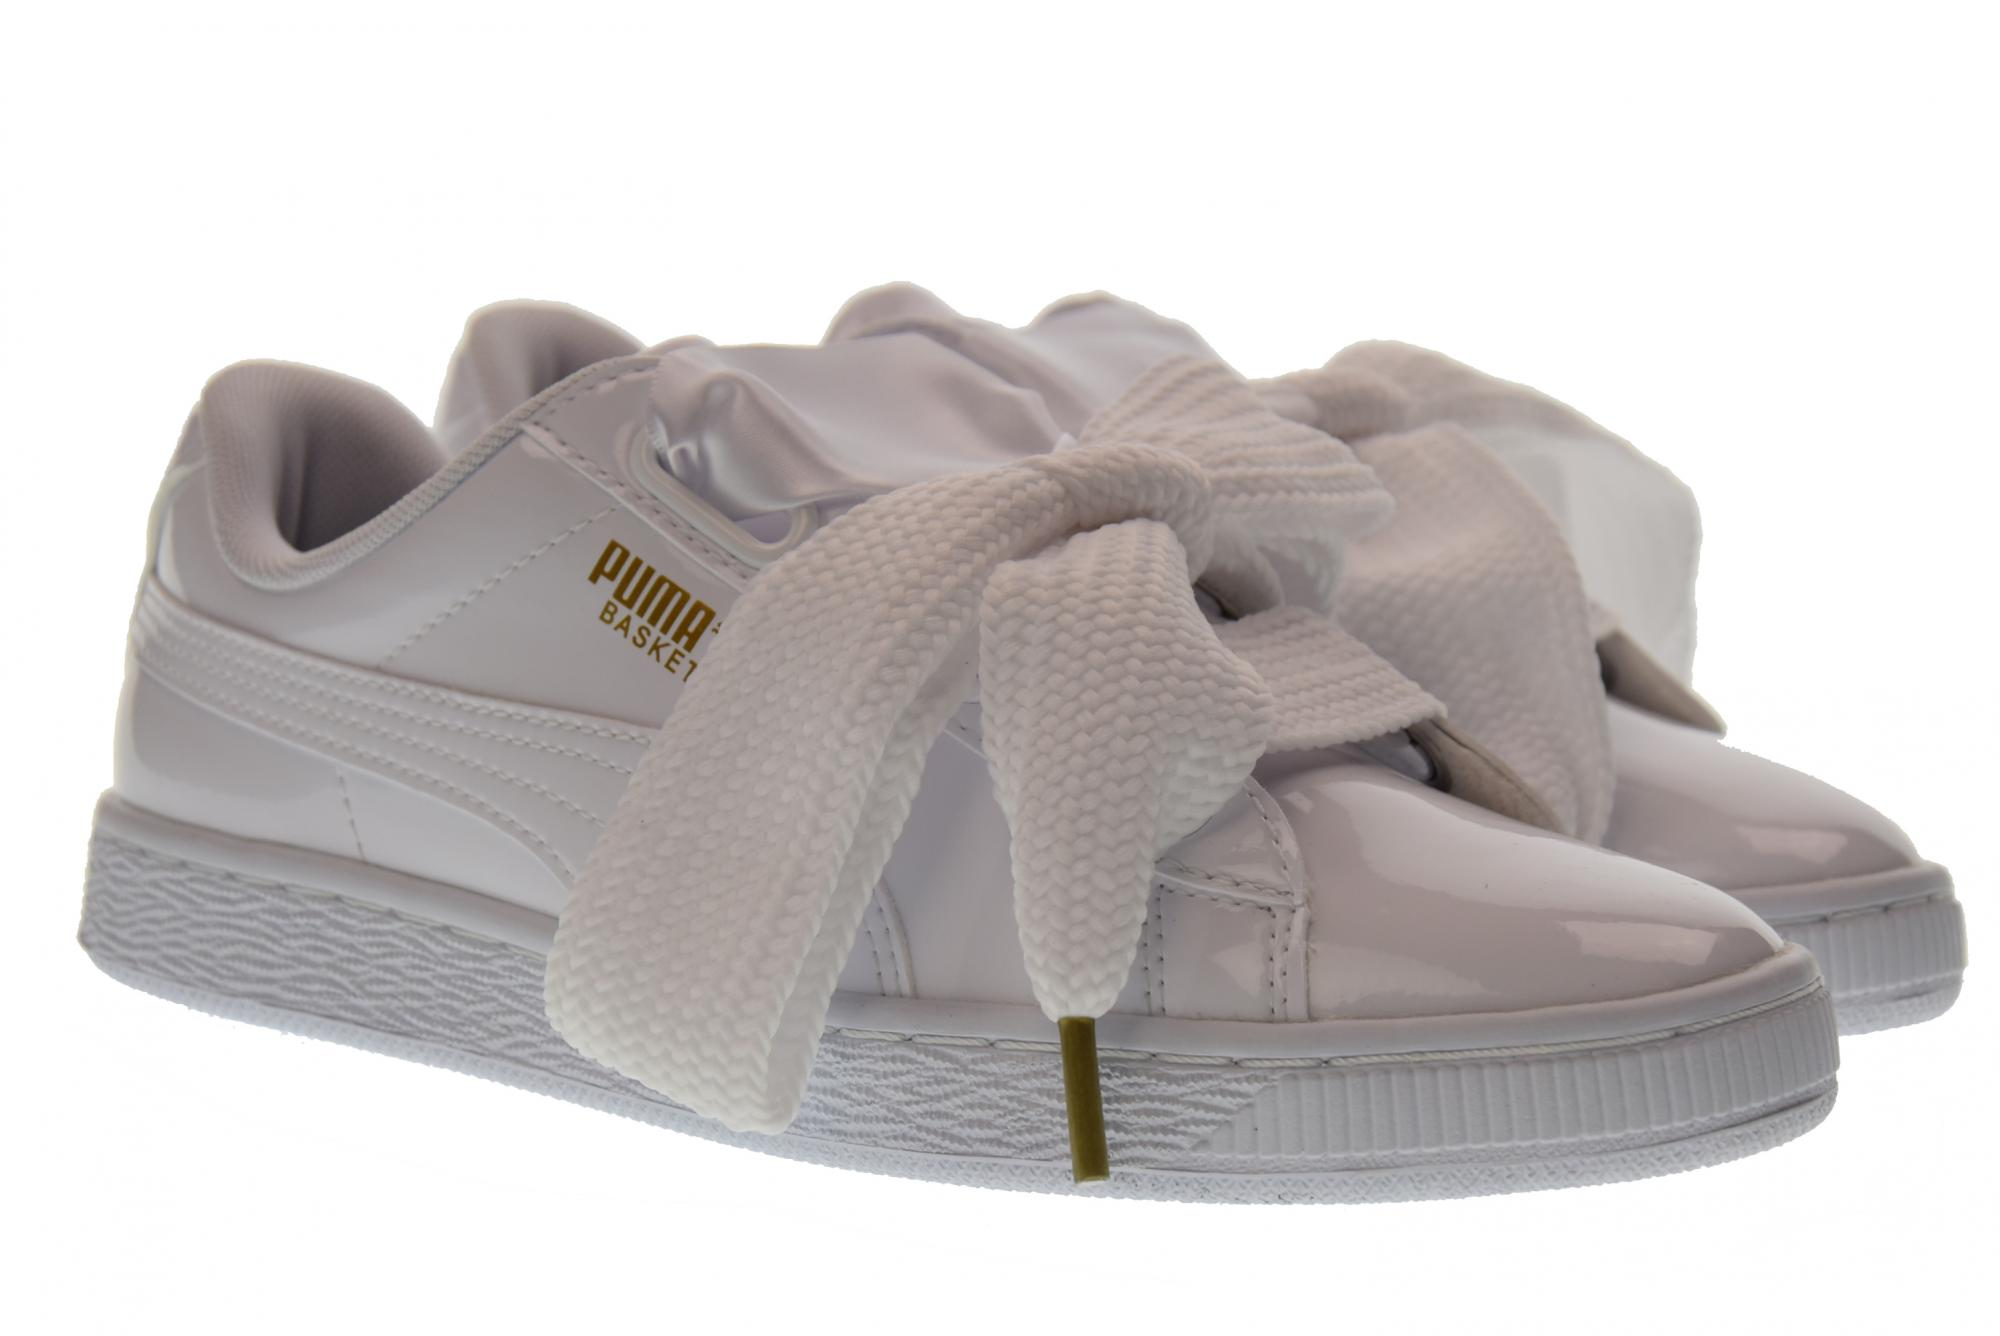 78fc5a2c8a48 Puma P18us shoes woman low sneakers 363073 02 BASKET HEART PATENT WN  S